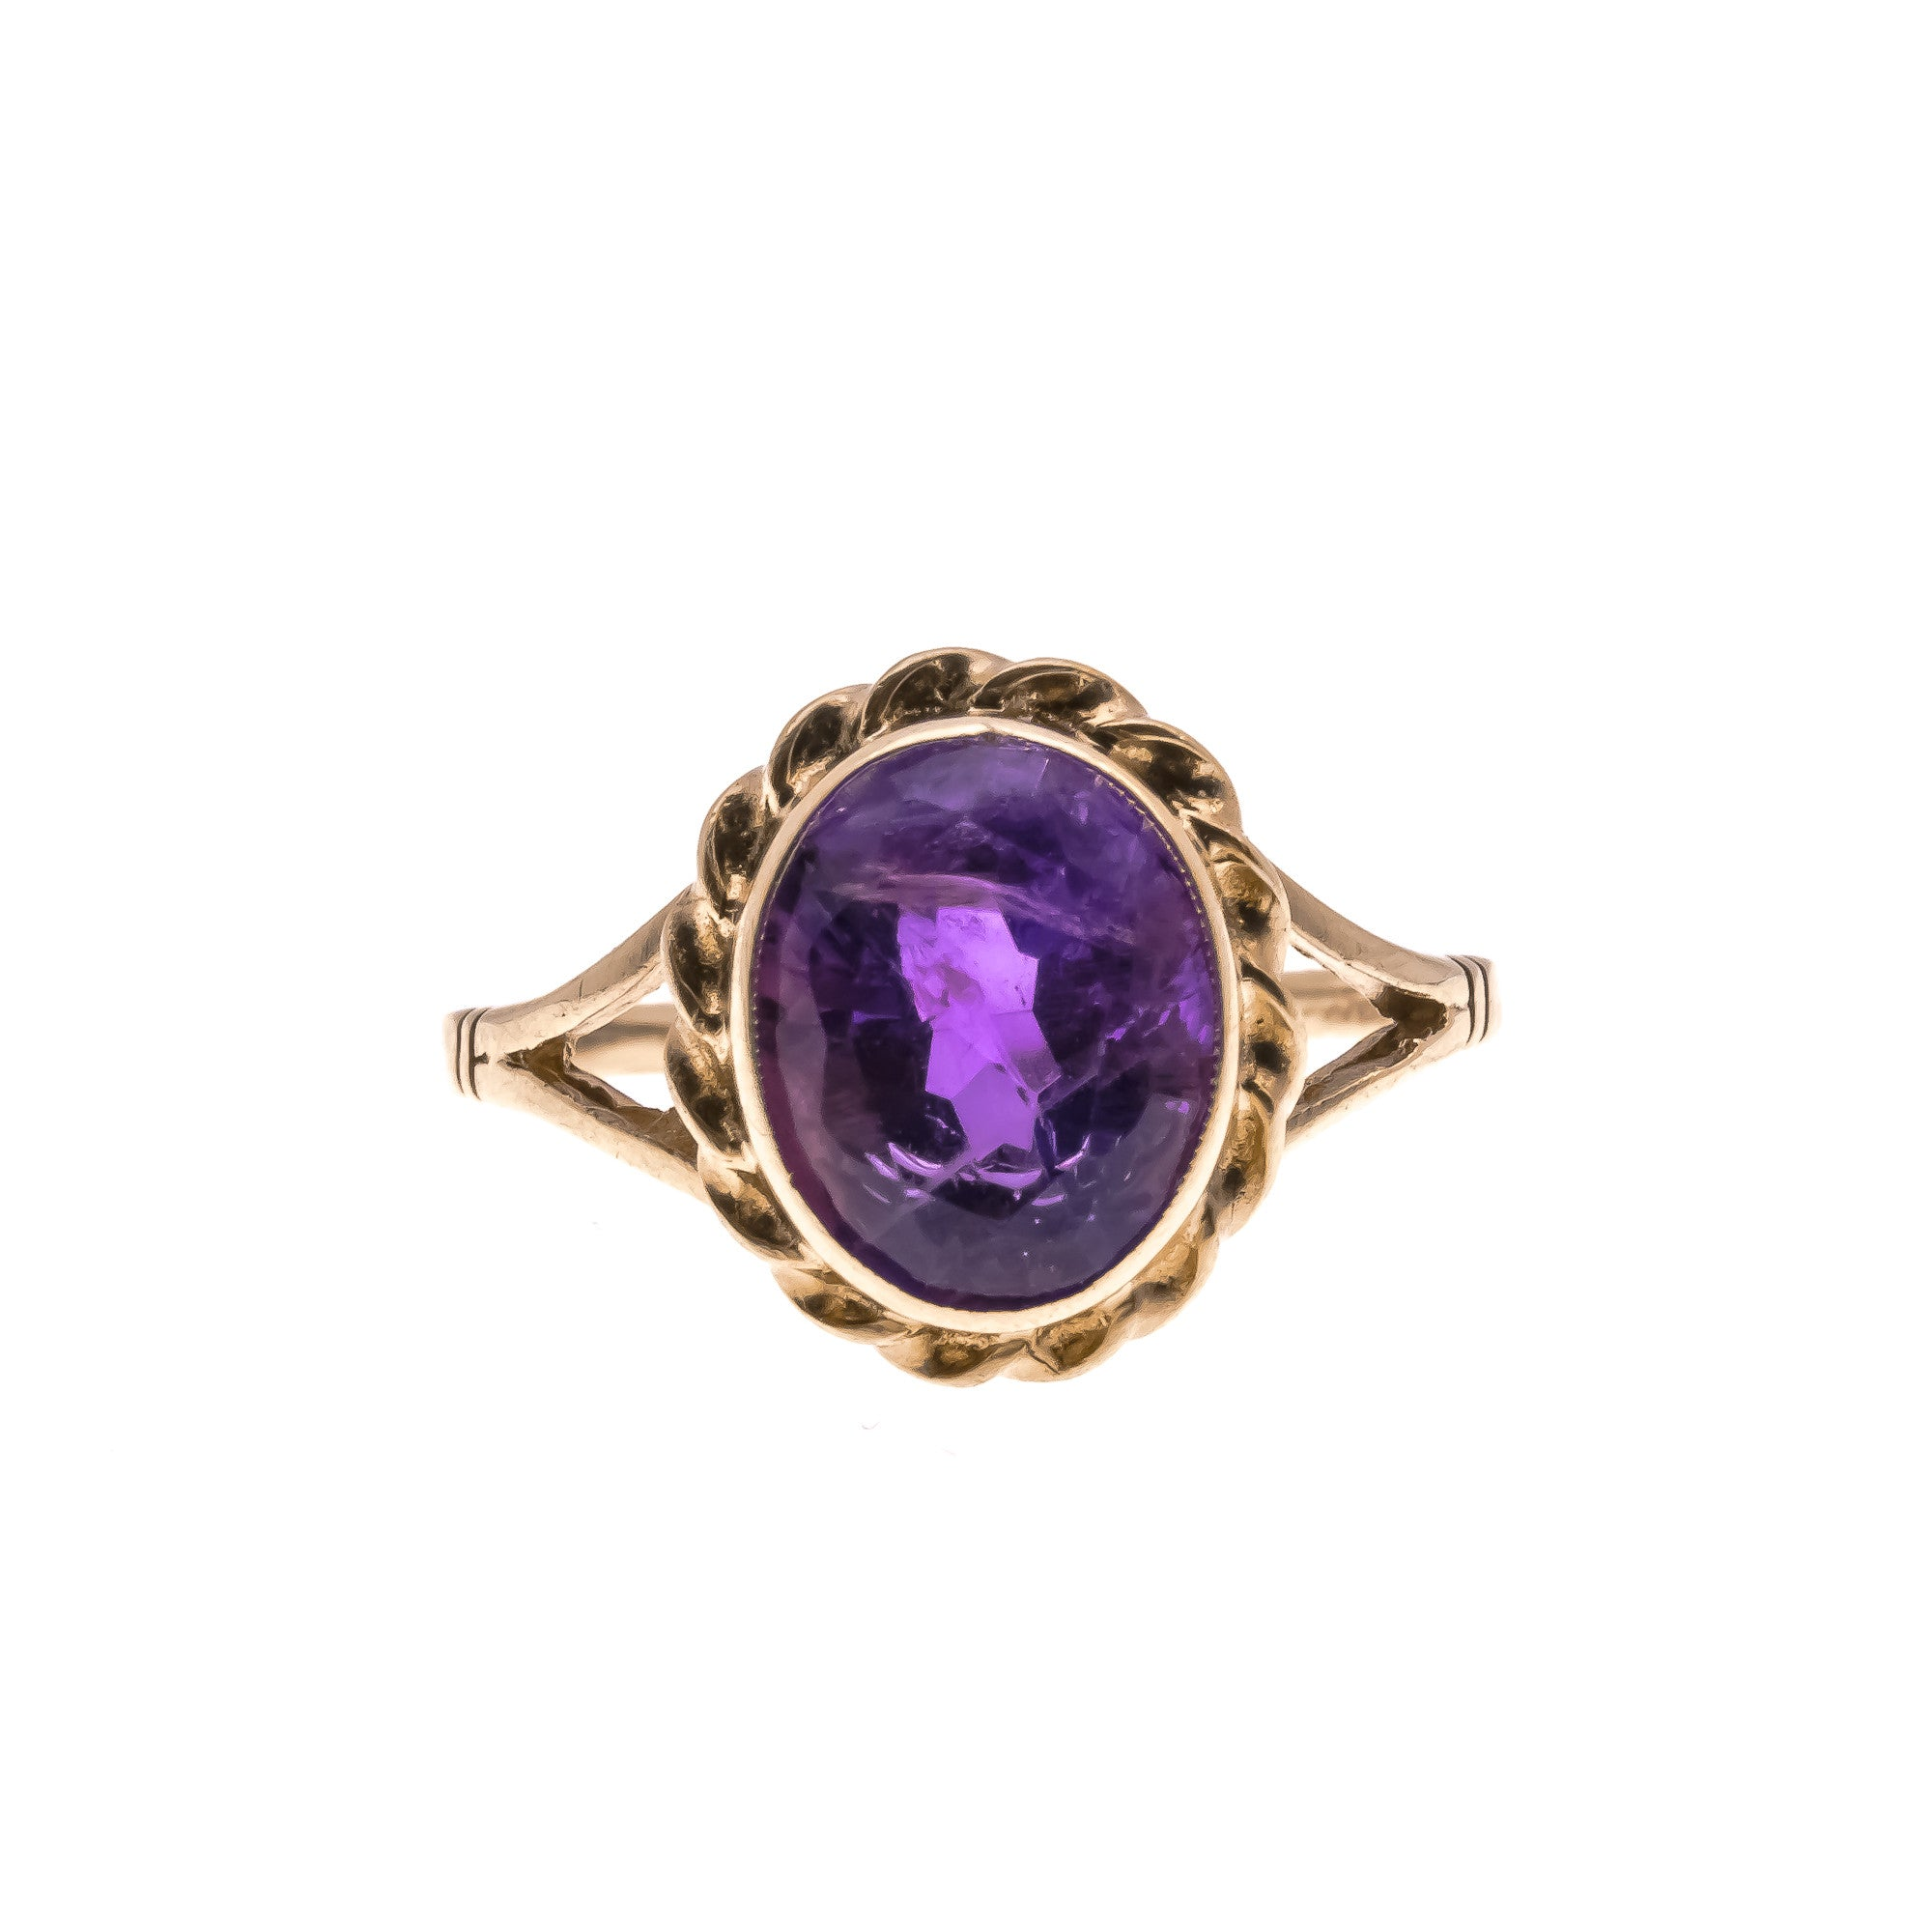 Intoxicating- Vintage 9K Amethyst Ring (VR204)